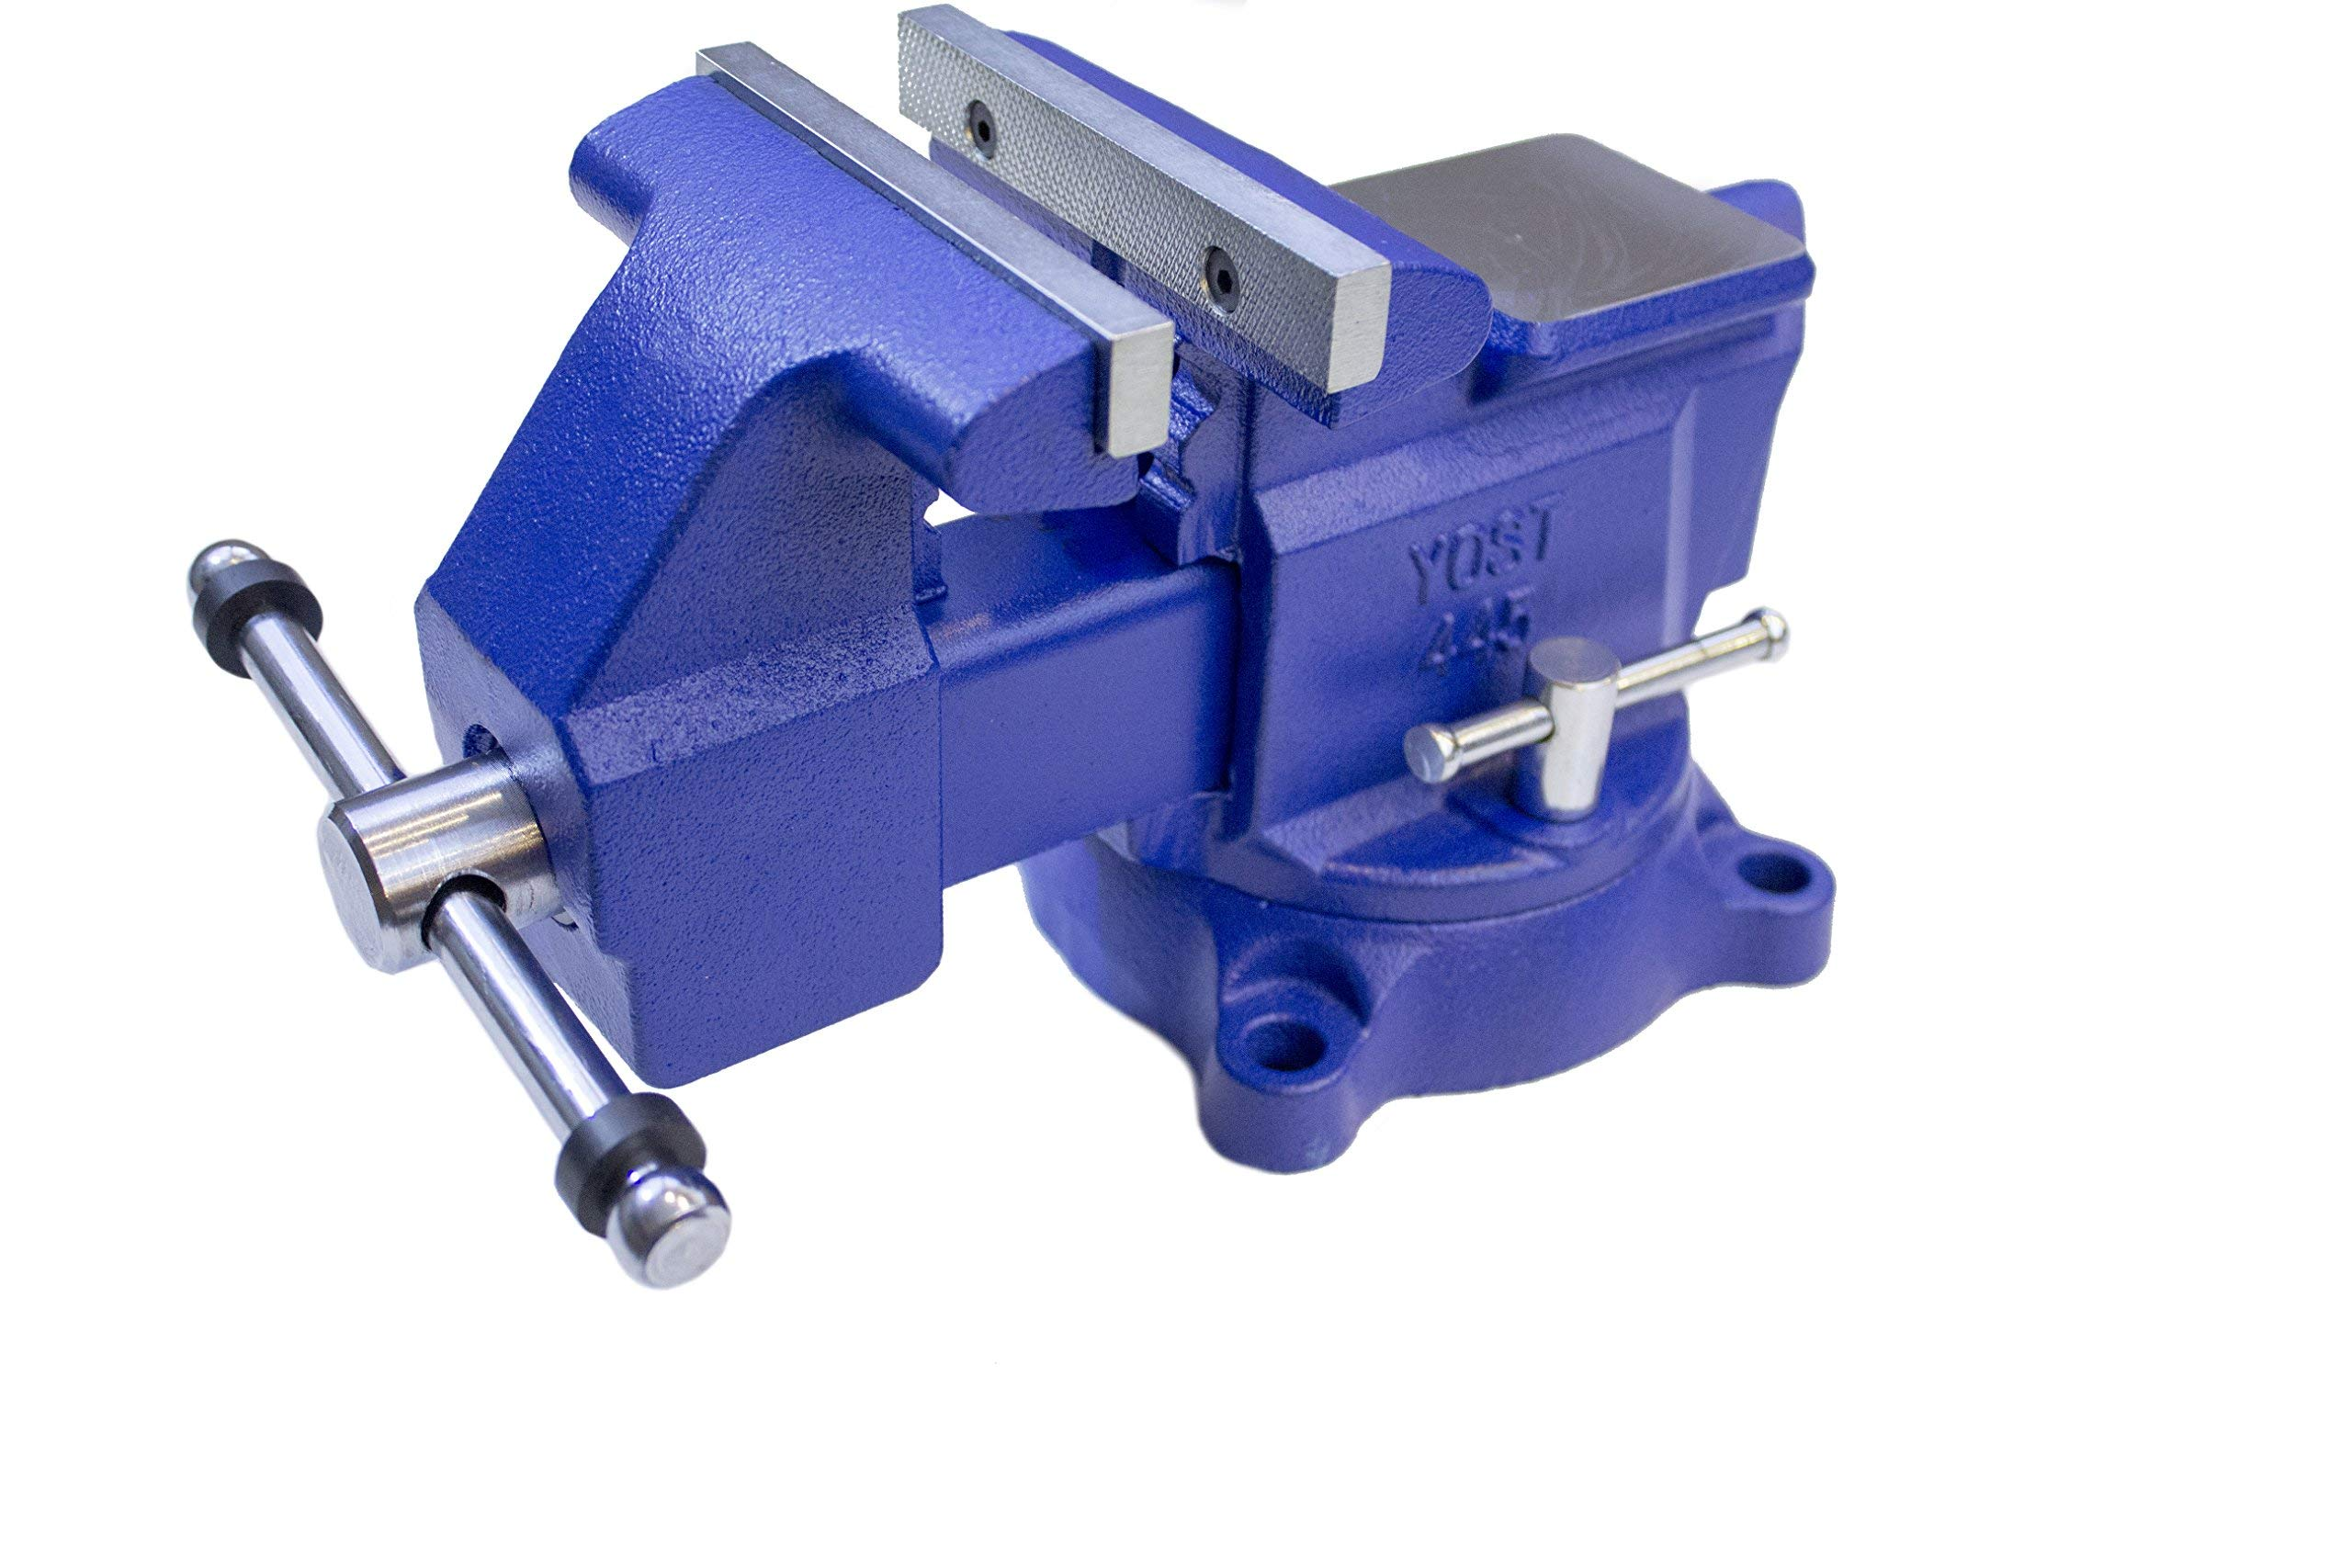 Yost Vises 465 6.5'' Heavy-Duty Utility Combination Pipe and Bench Vise (Renewed)